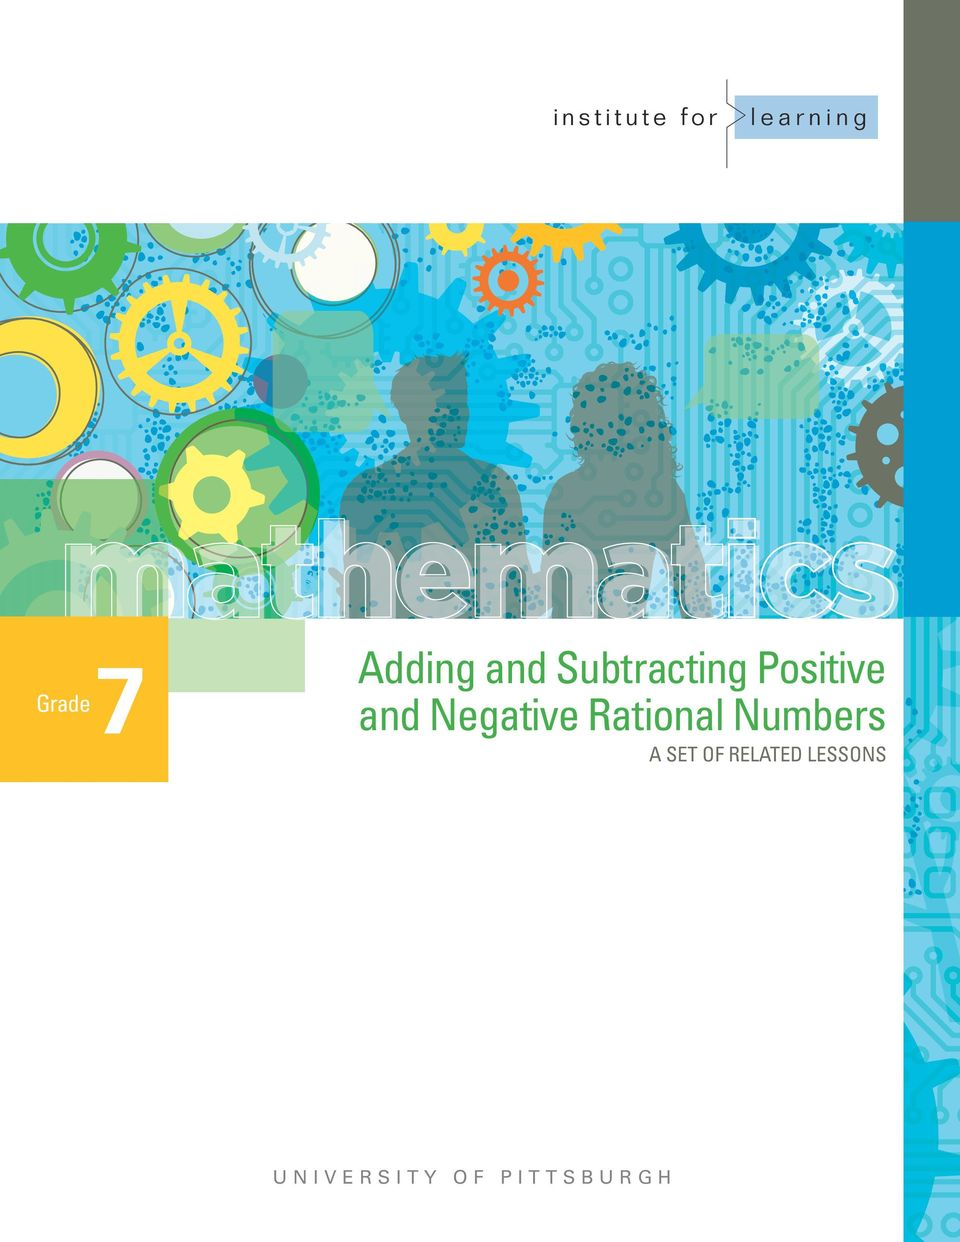 Negative Rational Numbers A SET